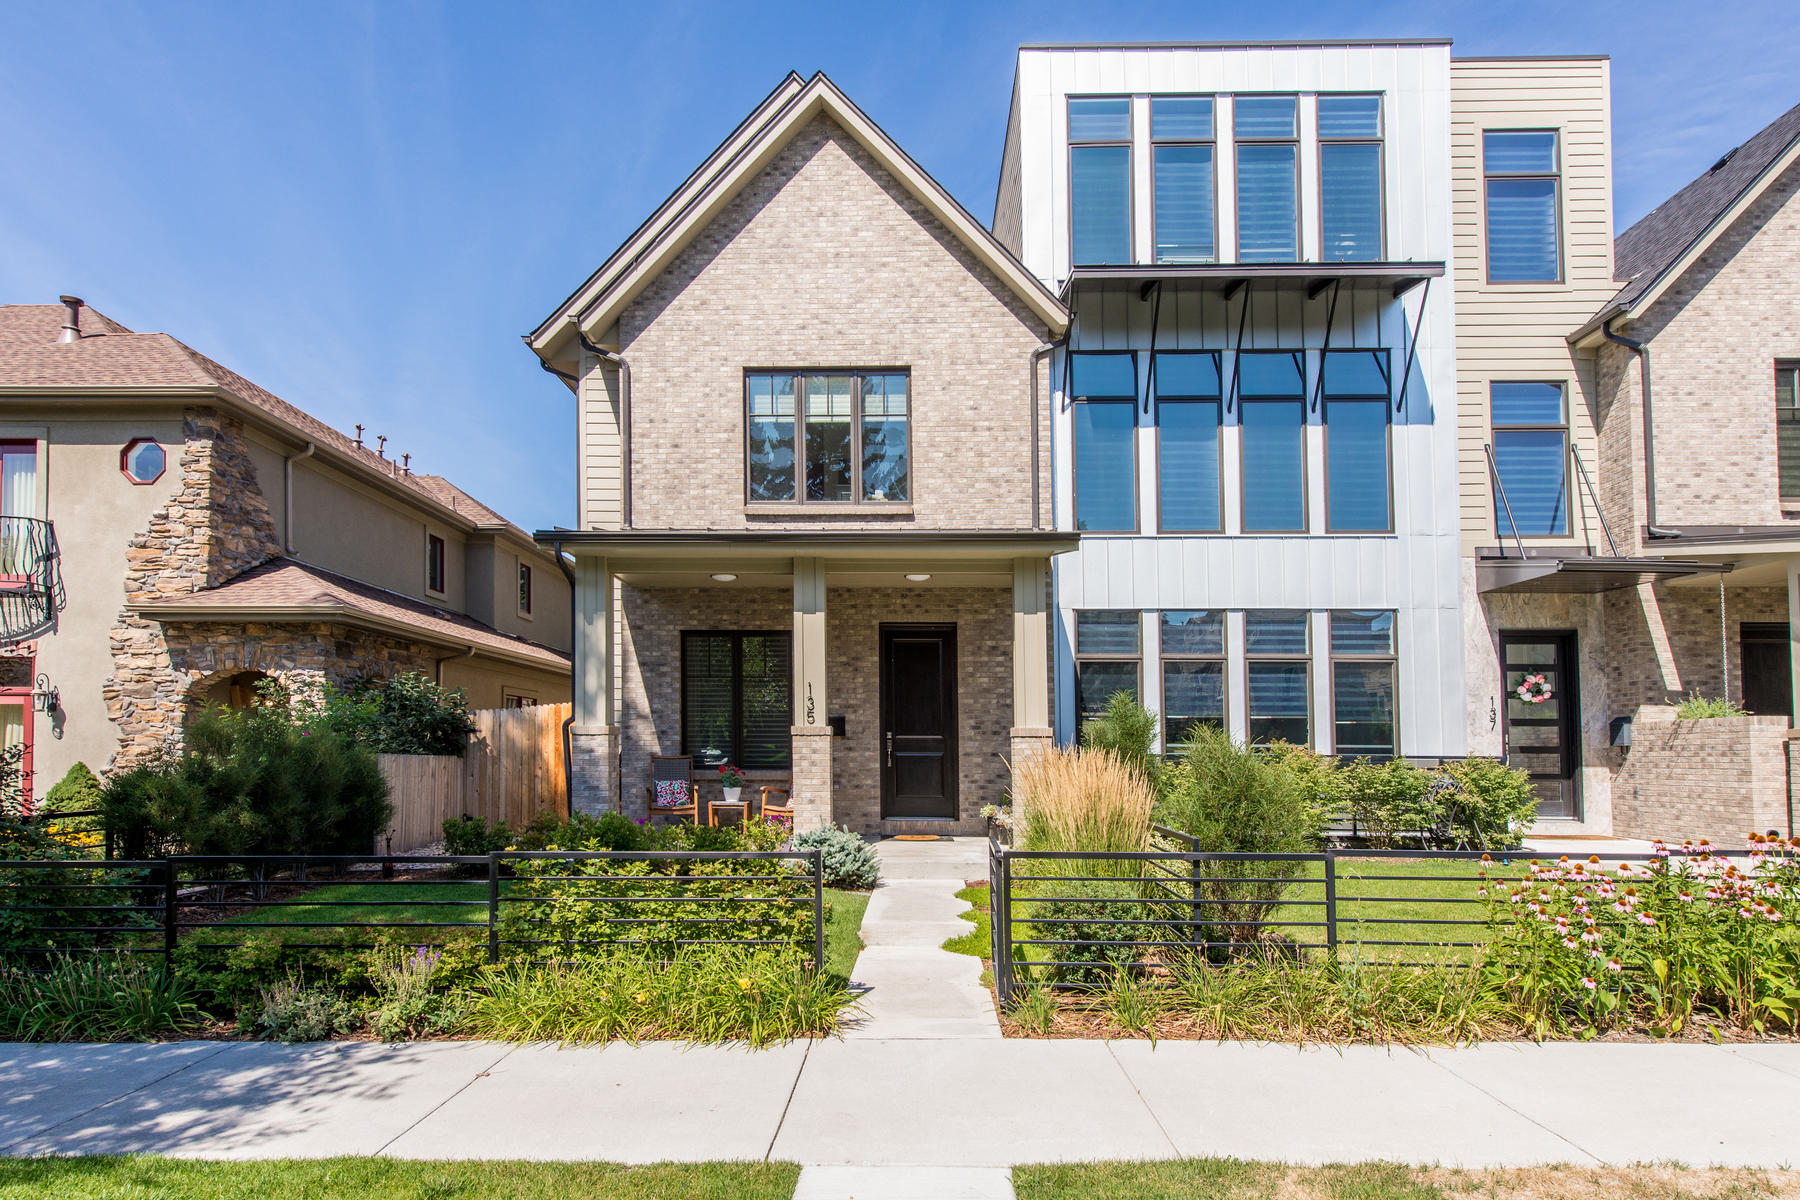 Single Family Home for Active at ALMOST NEW! 135 Jackson Denver, Colorado 80206 United States